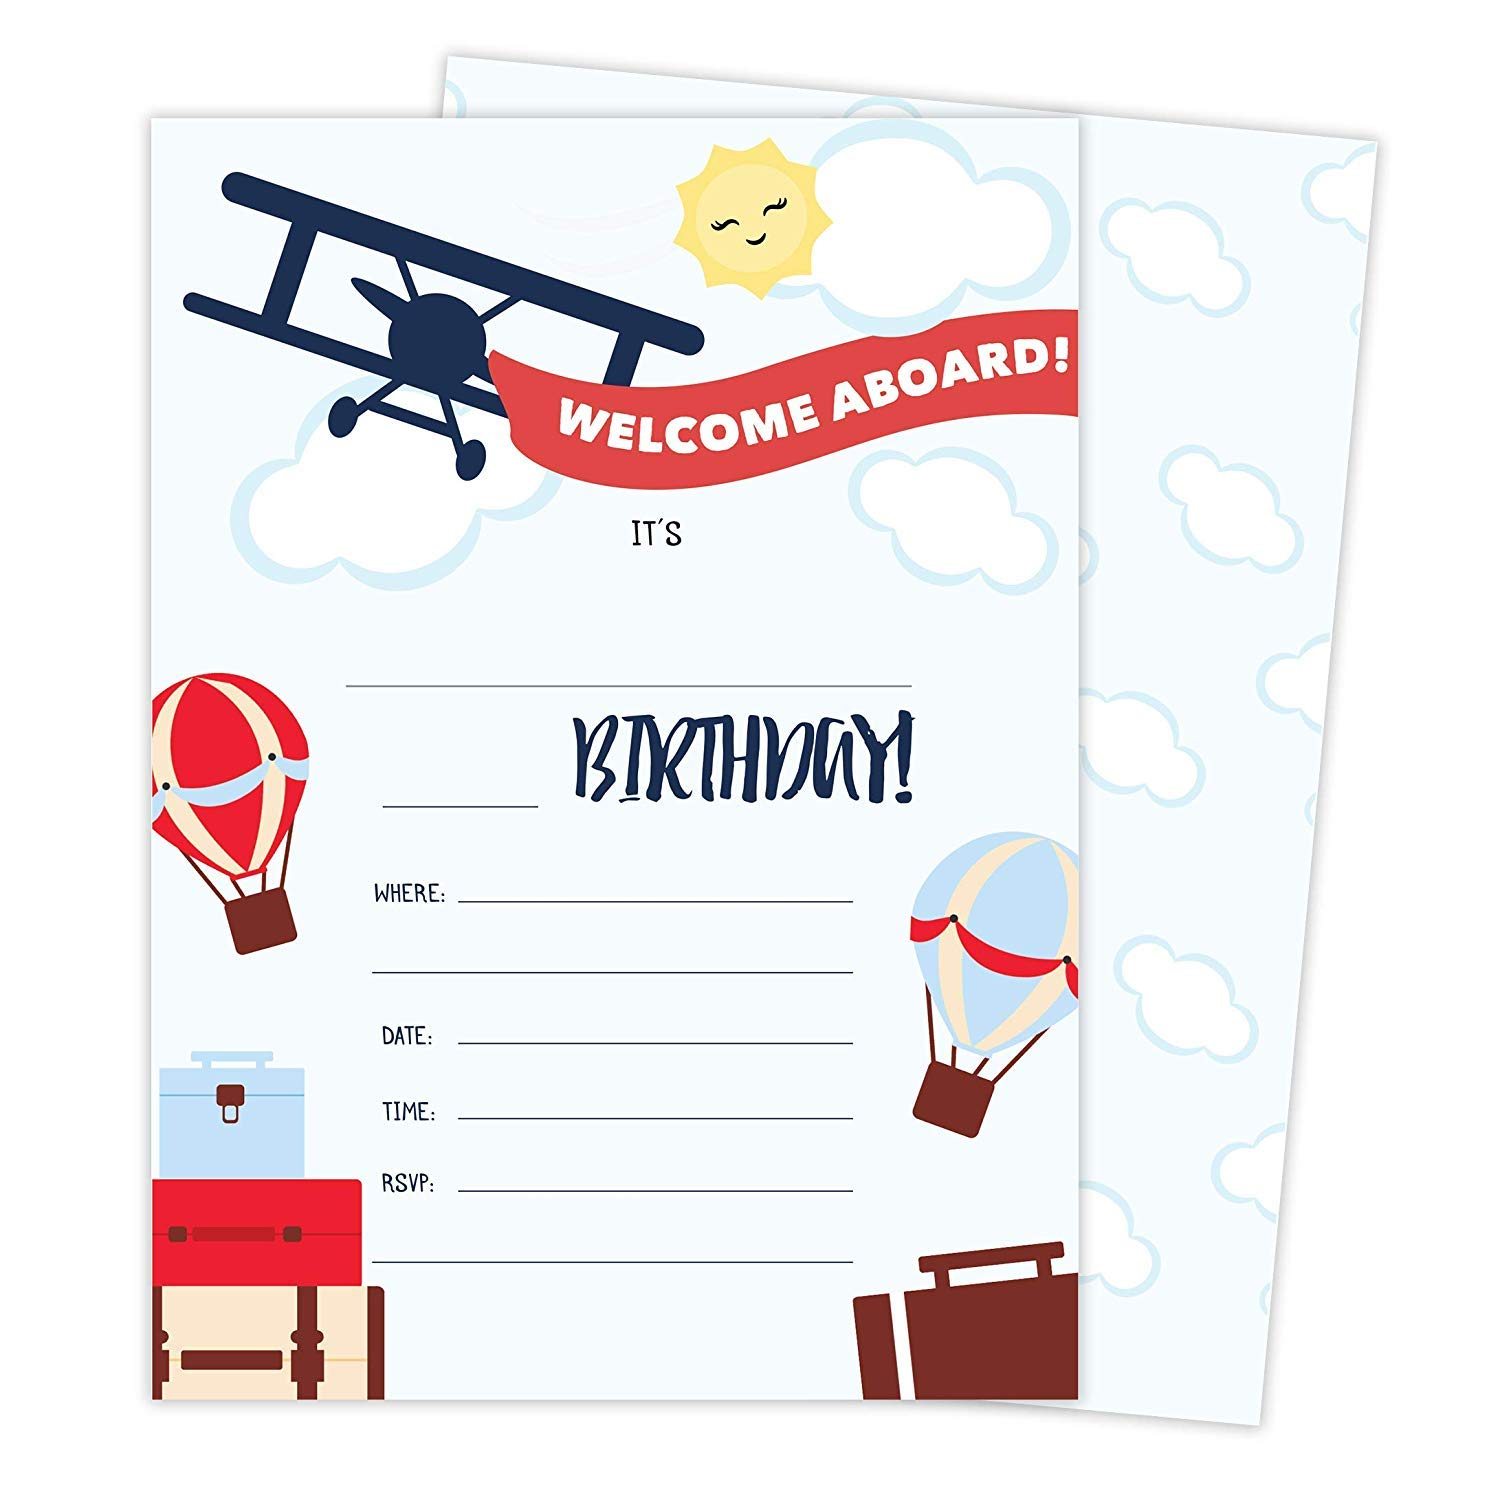 Airplane #1-25 Invitations & 25 Thank You Cards Combo Pack Happy Birthday Invite Cards With Envelopes & Seal Stickers Boys Girls Kids Party (Combo Pack) by Desert Cactus (Image #1)